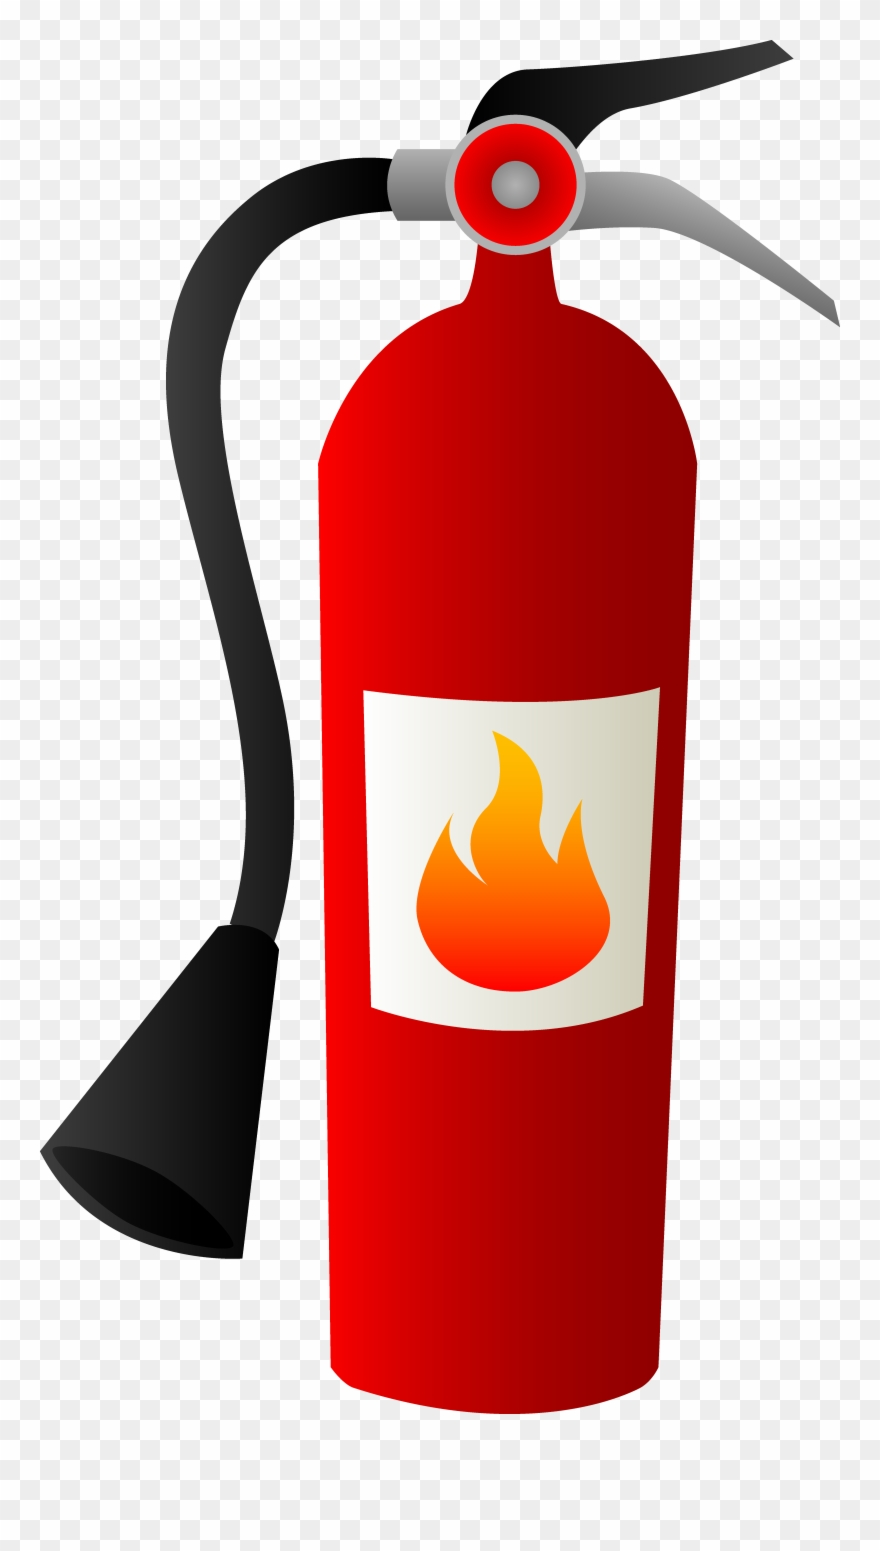 hight resolution of kitchen fire safety clip art fire extinguisher clipart png download